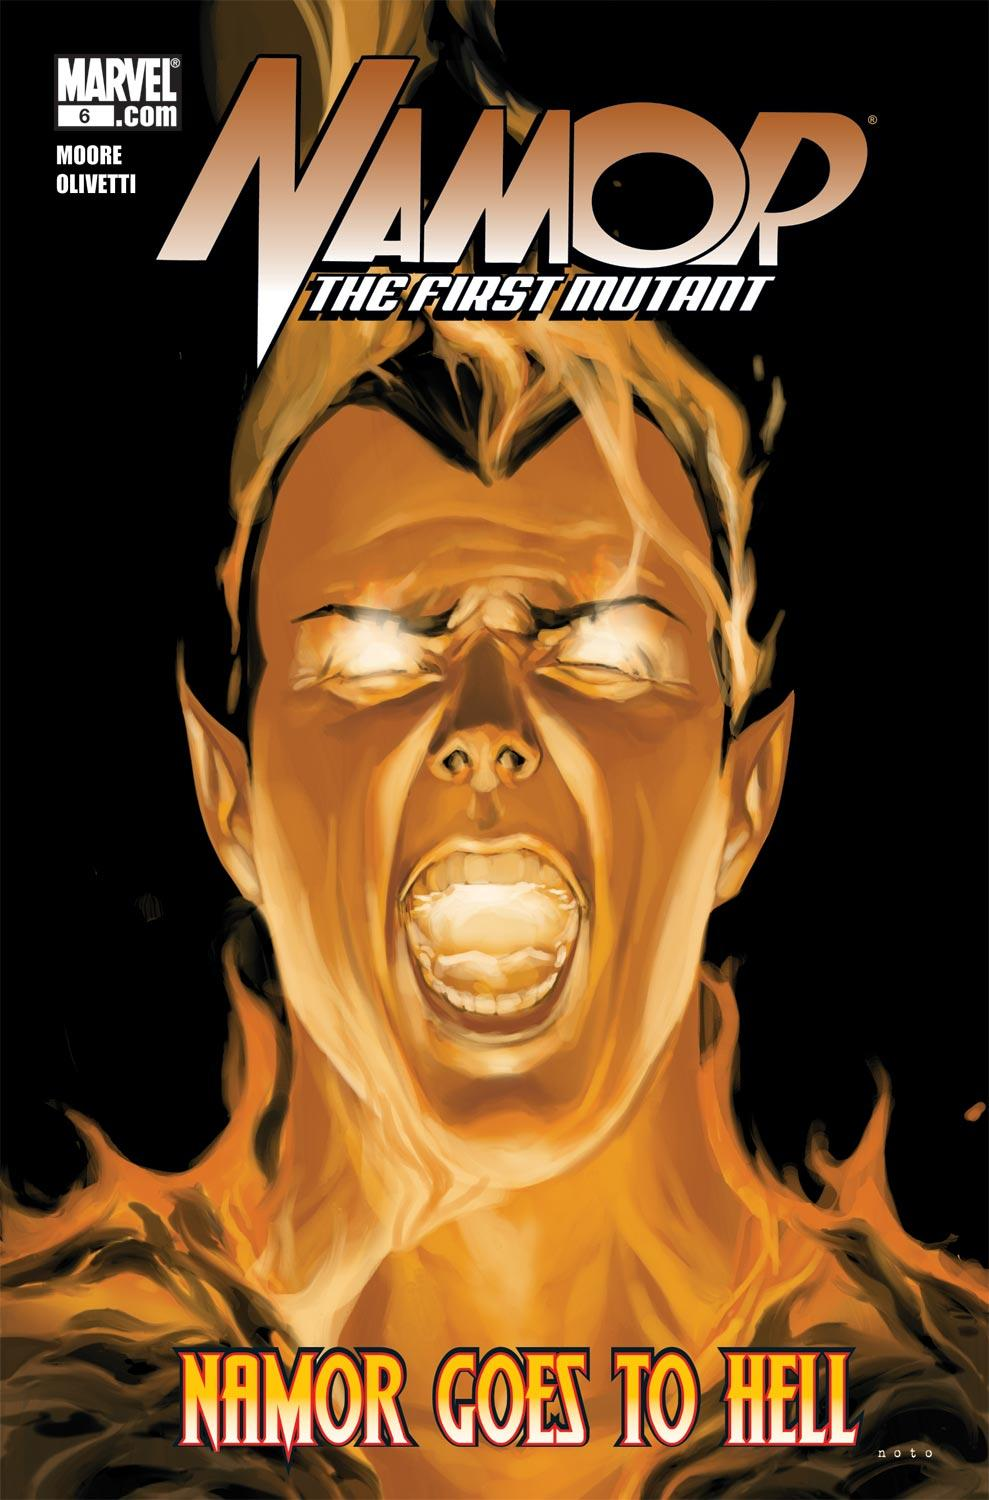 Namor: The First Mutant (2010) #6